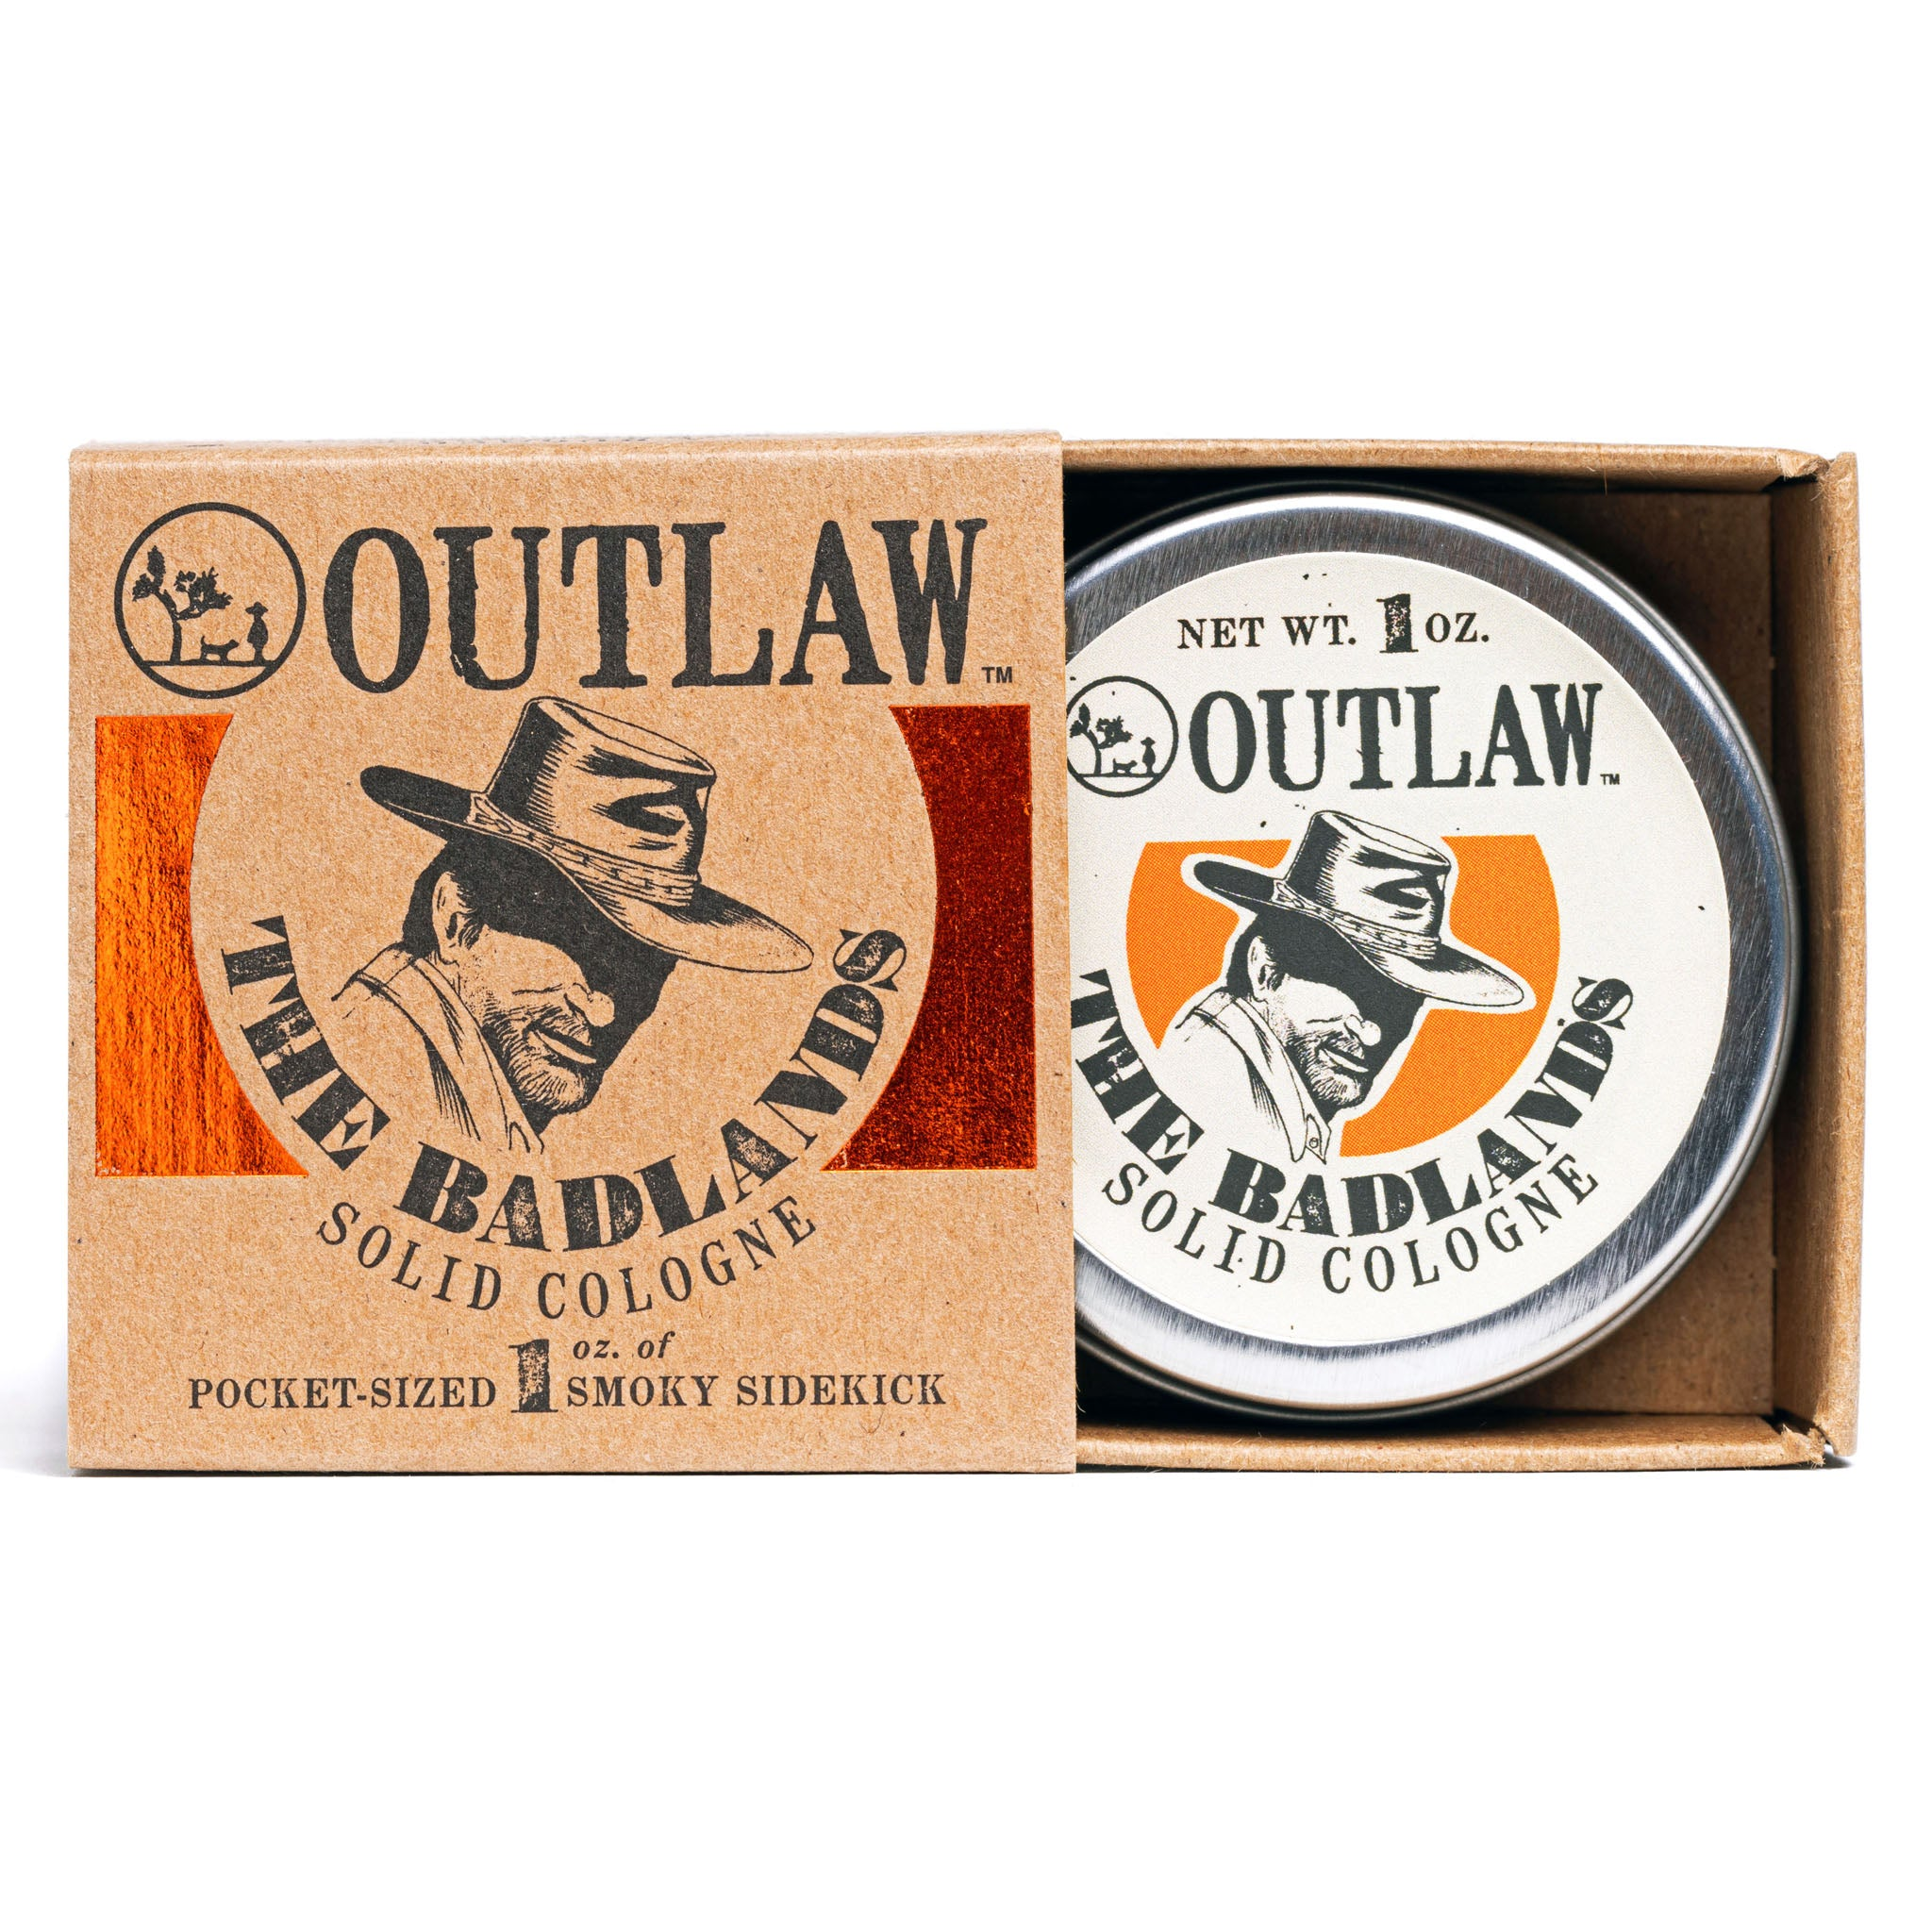 The Badlands Solid Cologne